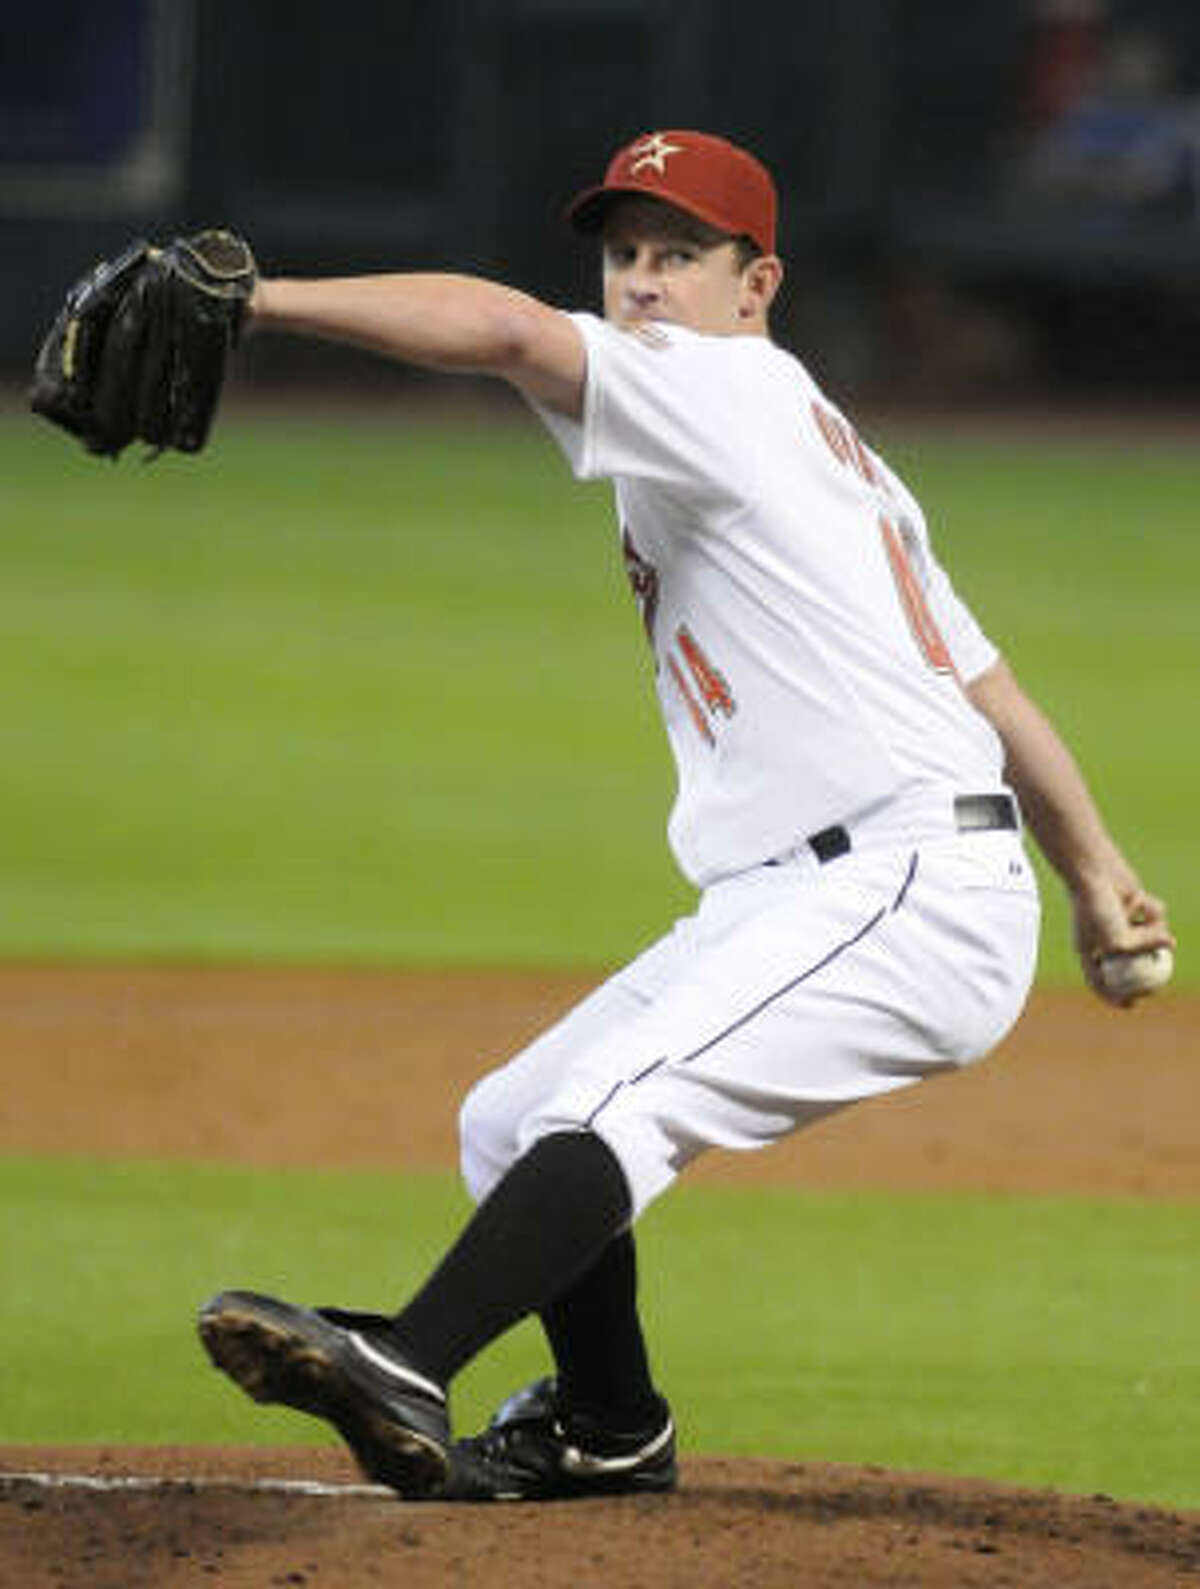 Roy Oswalt tossed a one-hit shutout, striking out eight Pirates to improve to 6-10.